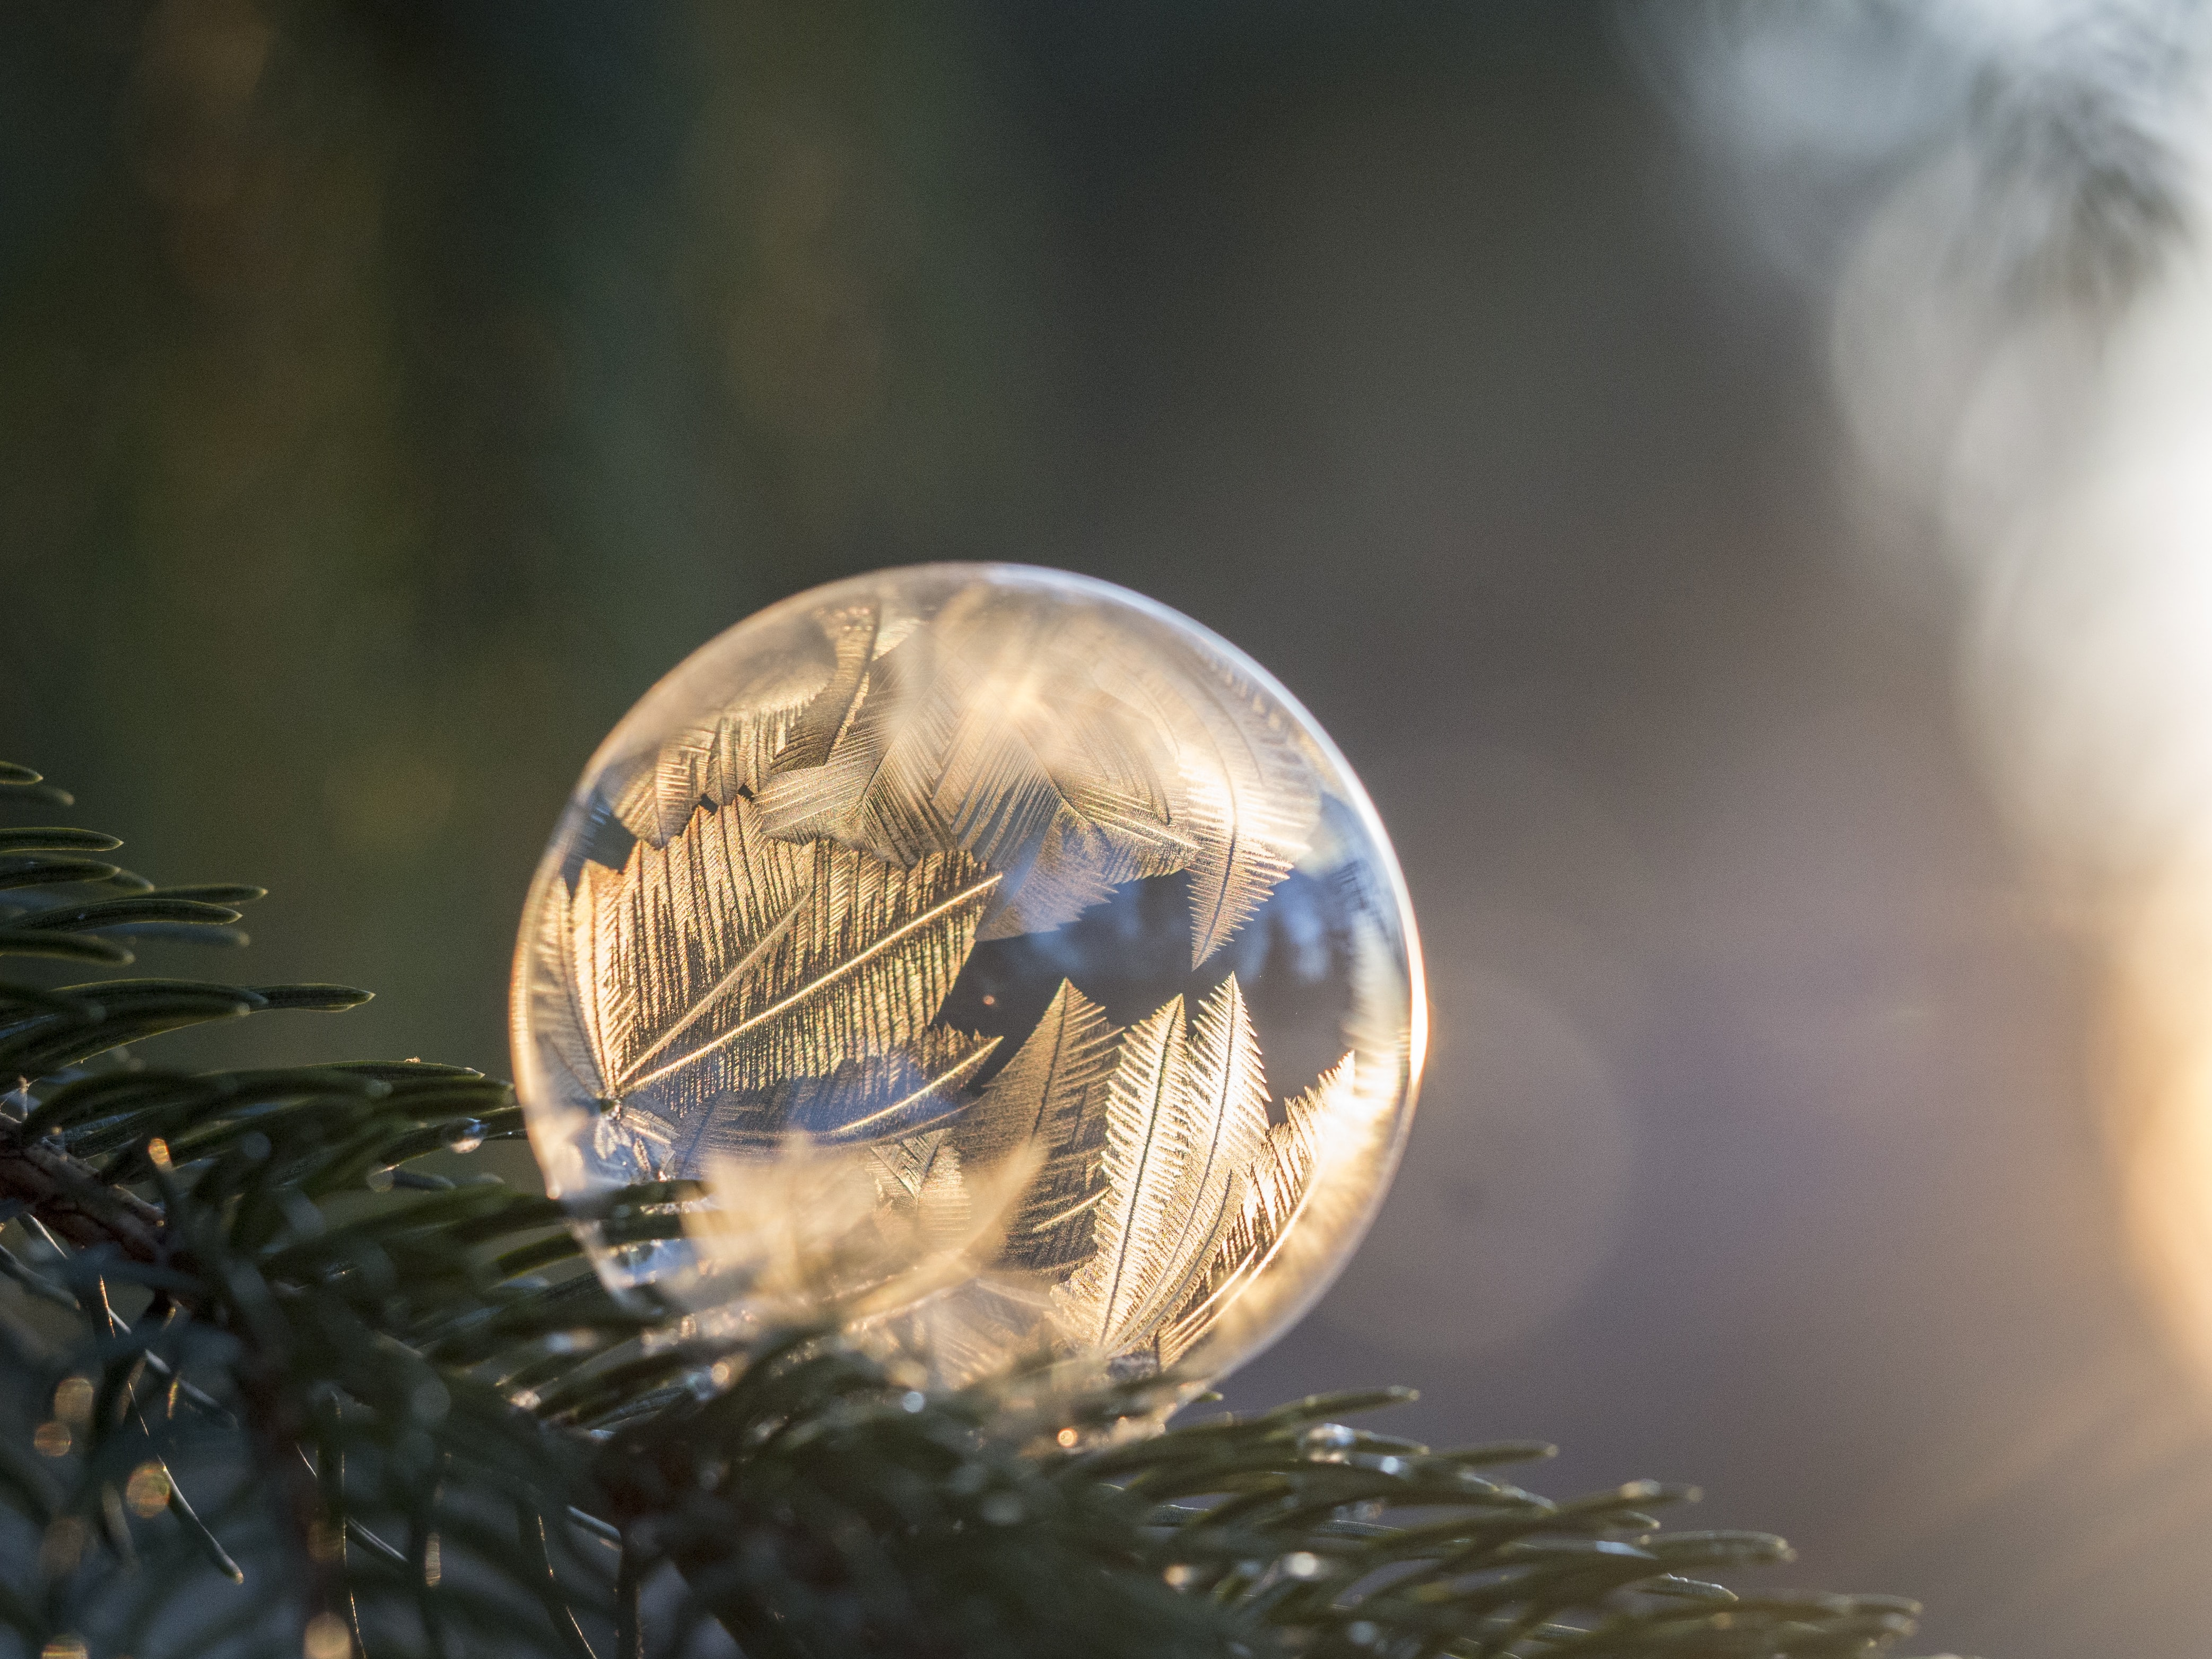 A frozen bubble rests on a pine branch while sun illuminates its icy patterns